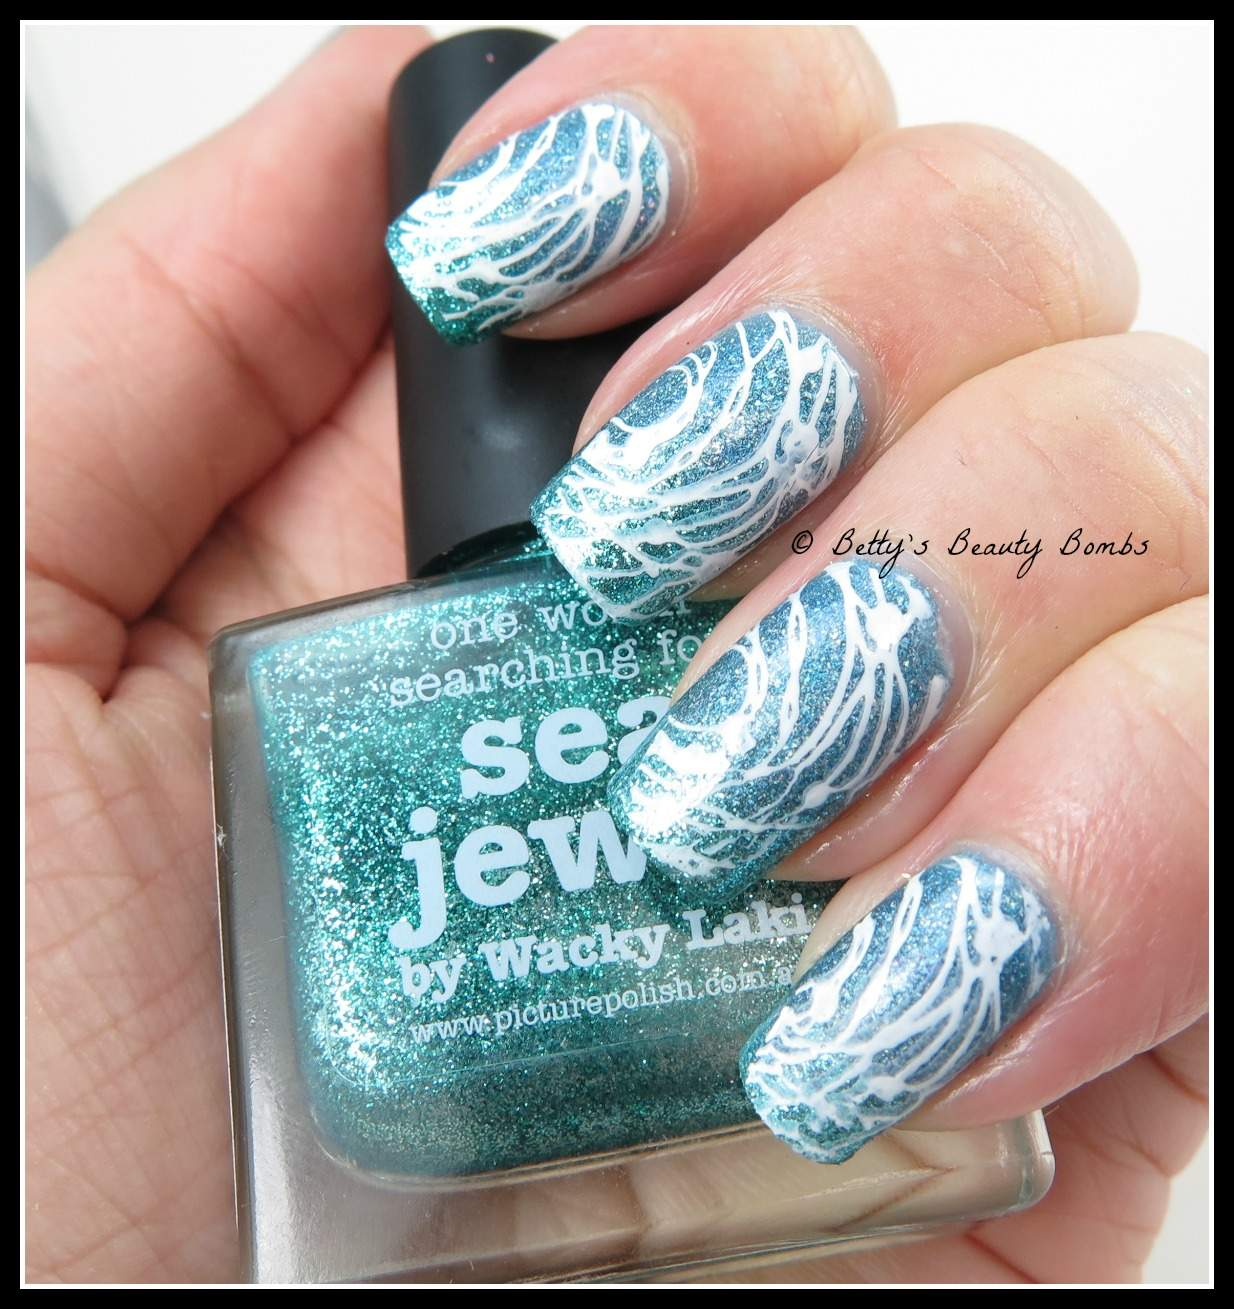 Ocean-Nail-Art - Ocean Nail Art For Challenge Your Nail Art - Lazy Betty